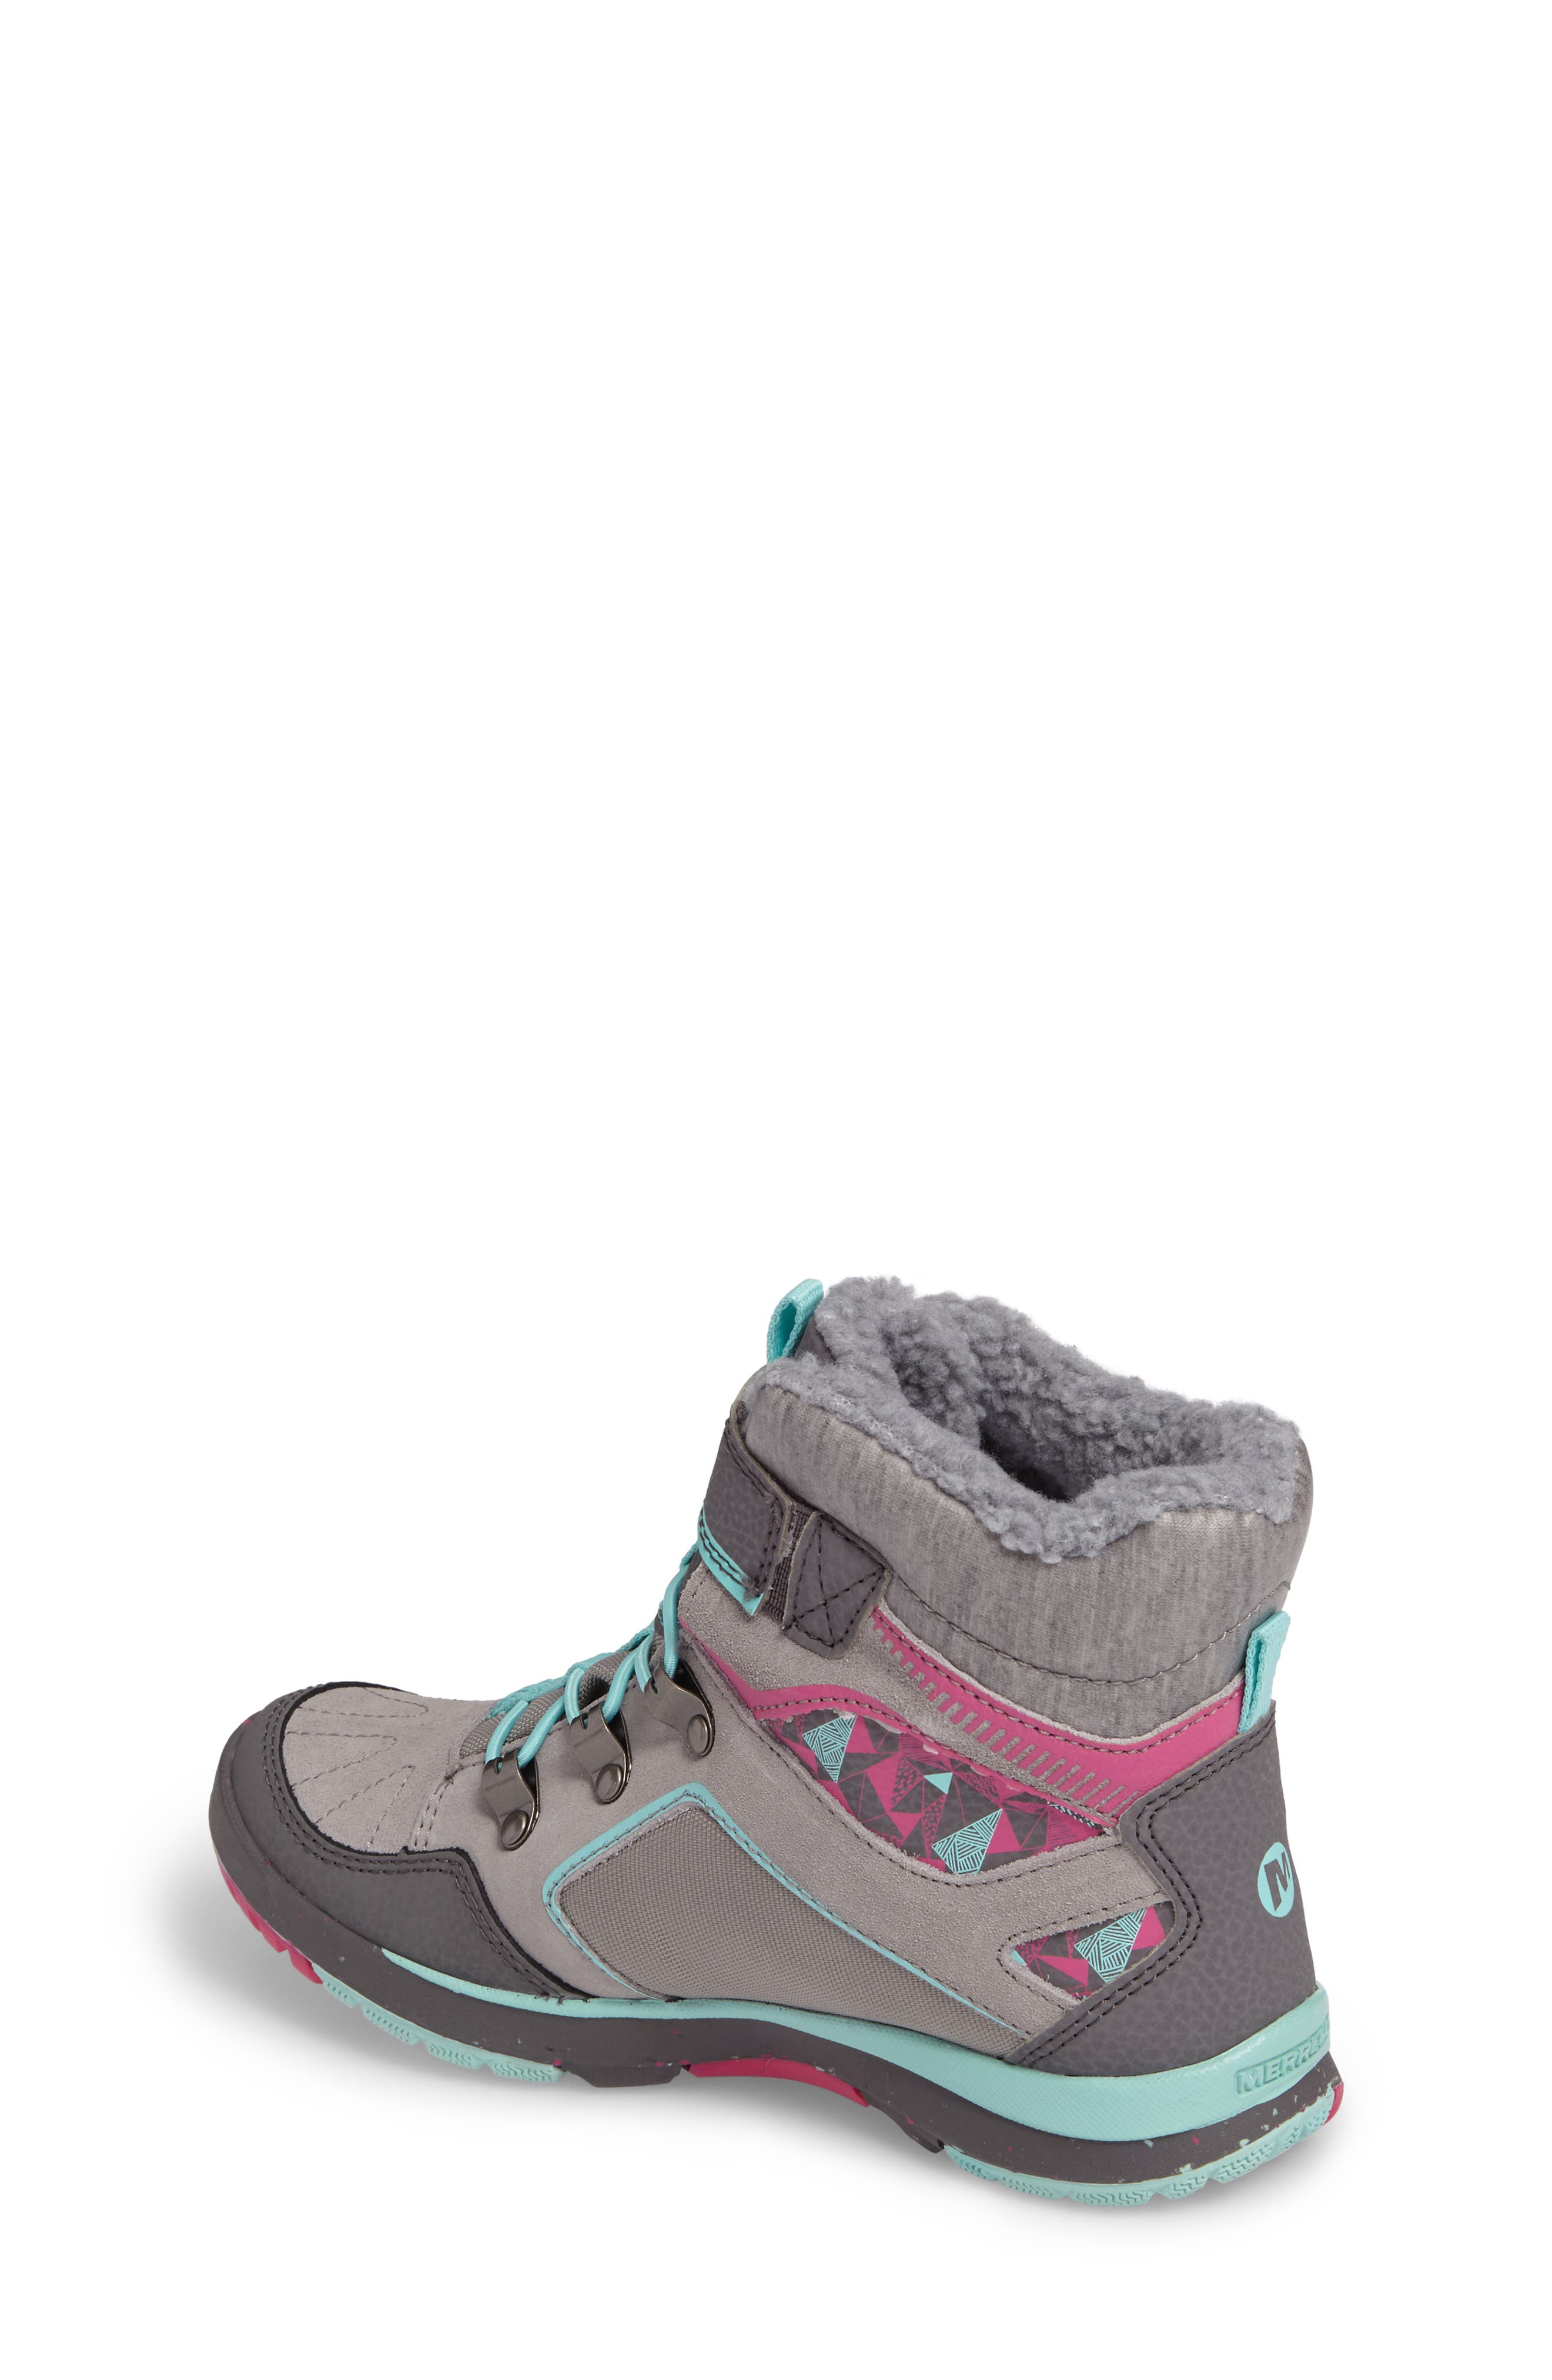 Moab FST Polar Mid Waterproof Insulated Sneaker Boot,                             Alternate thumbnail 2, color,